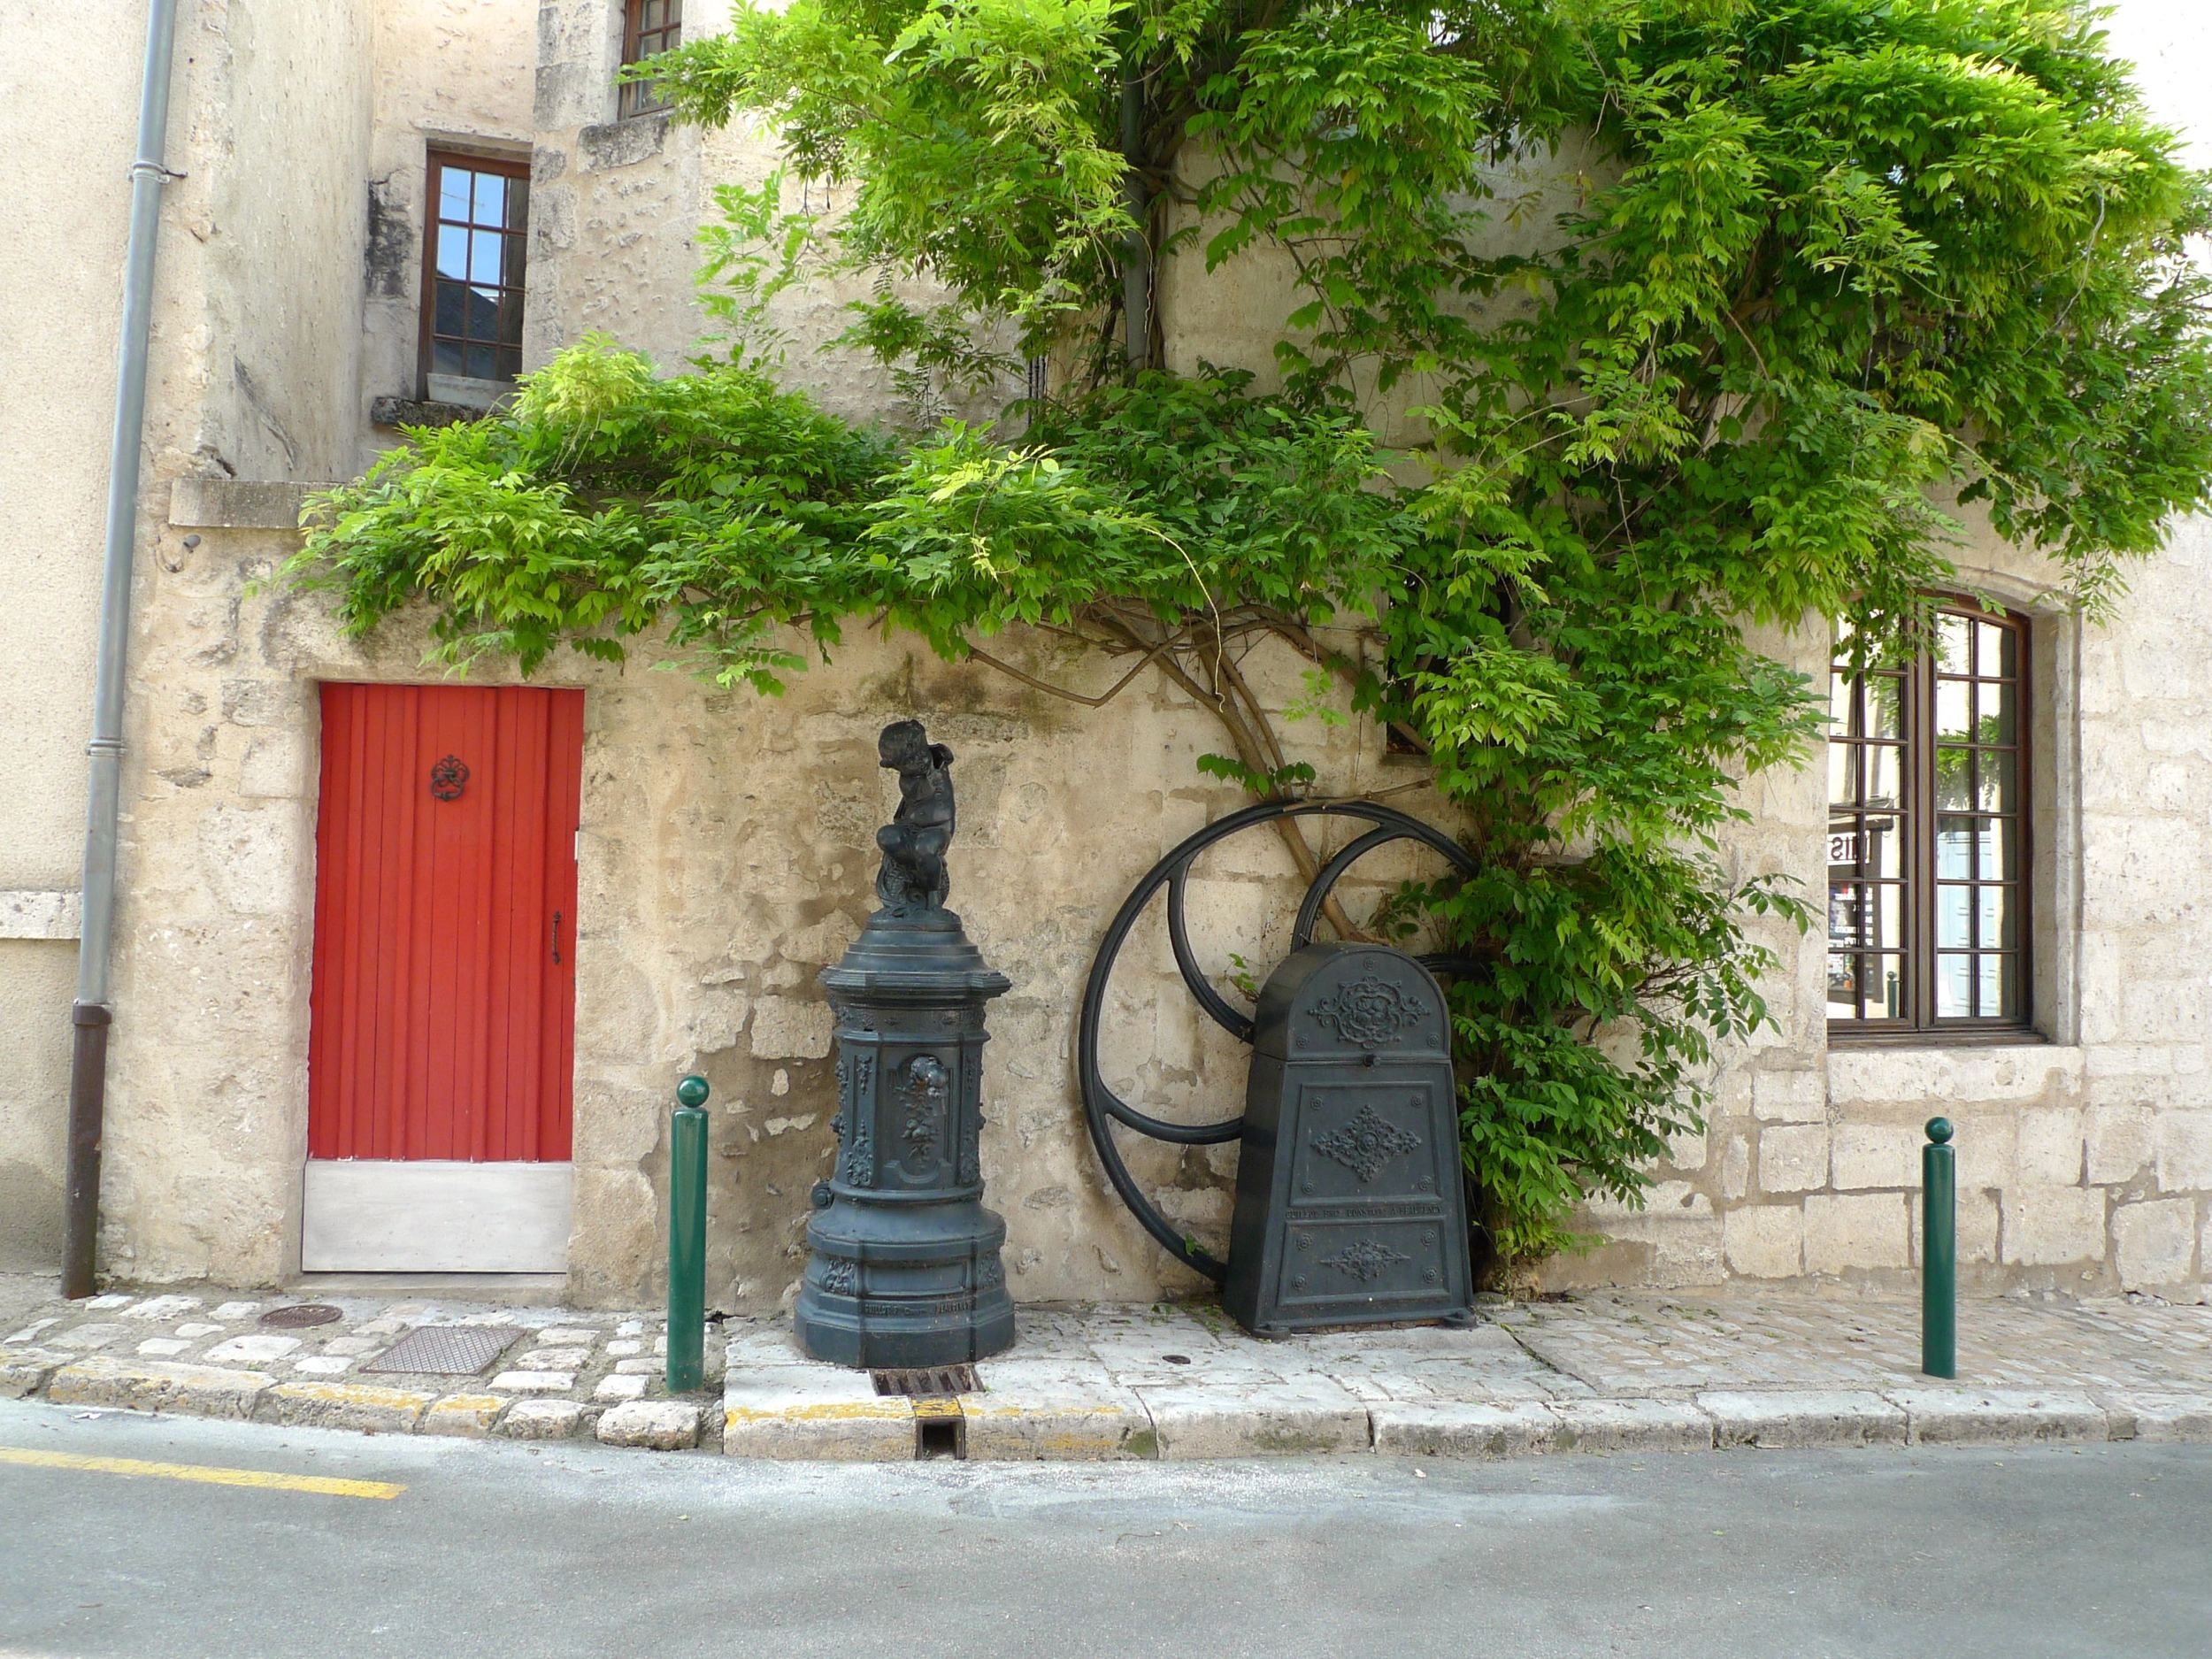 A red door, wisteria and some interesting ironwork